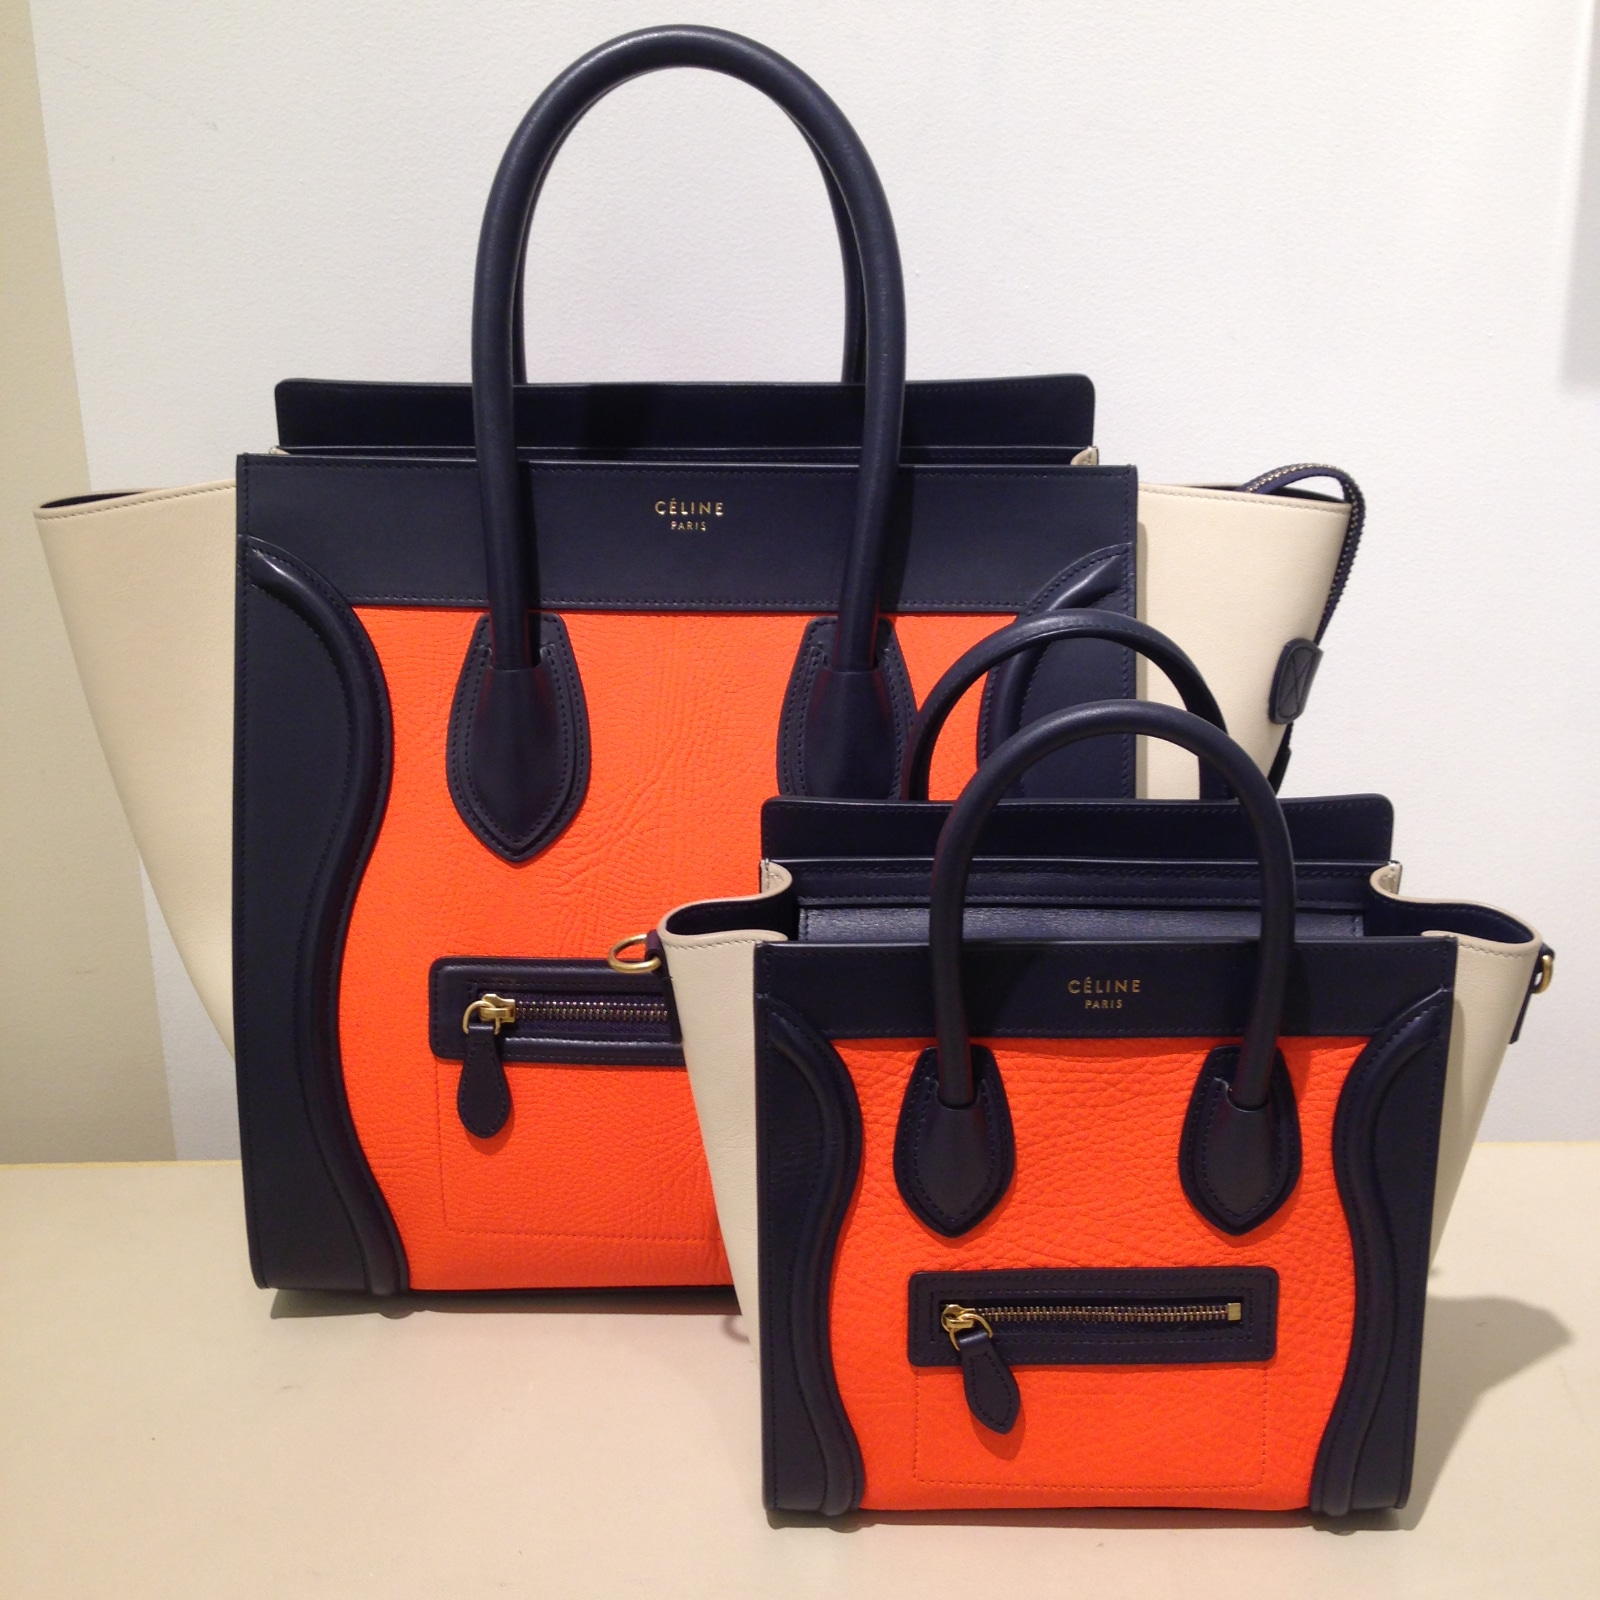 Celine Nano Luggage Tote Bag Reference Guide | Spotted Fashion